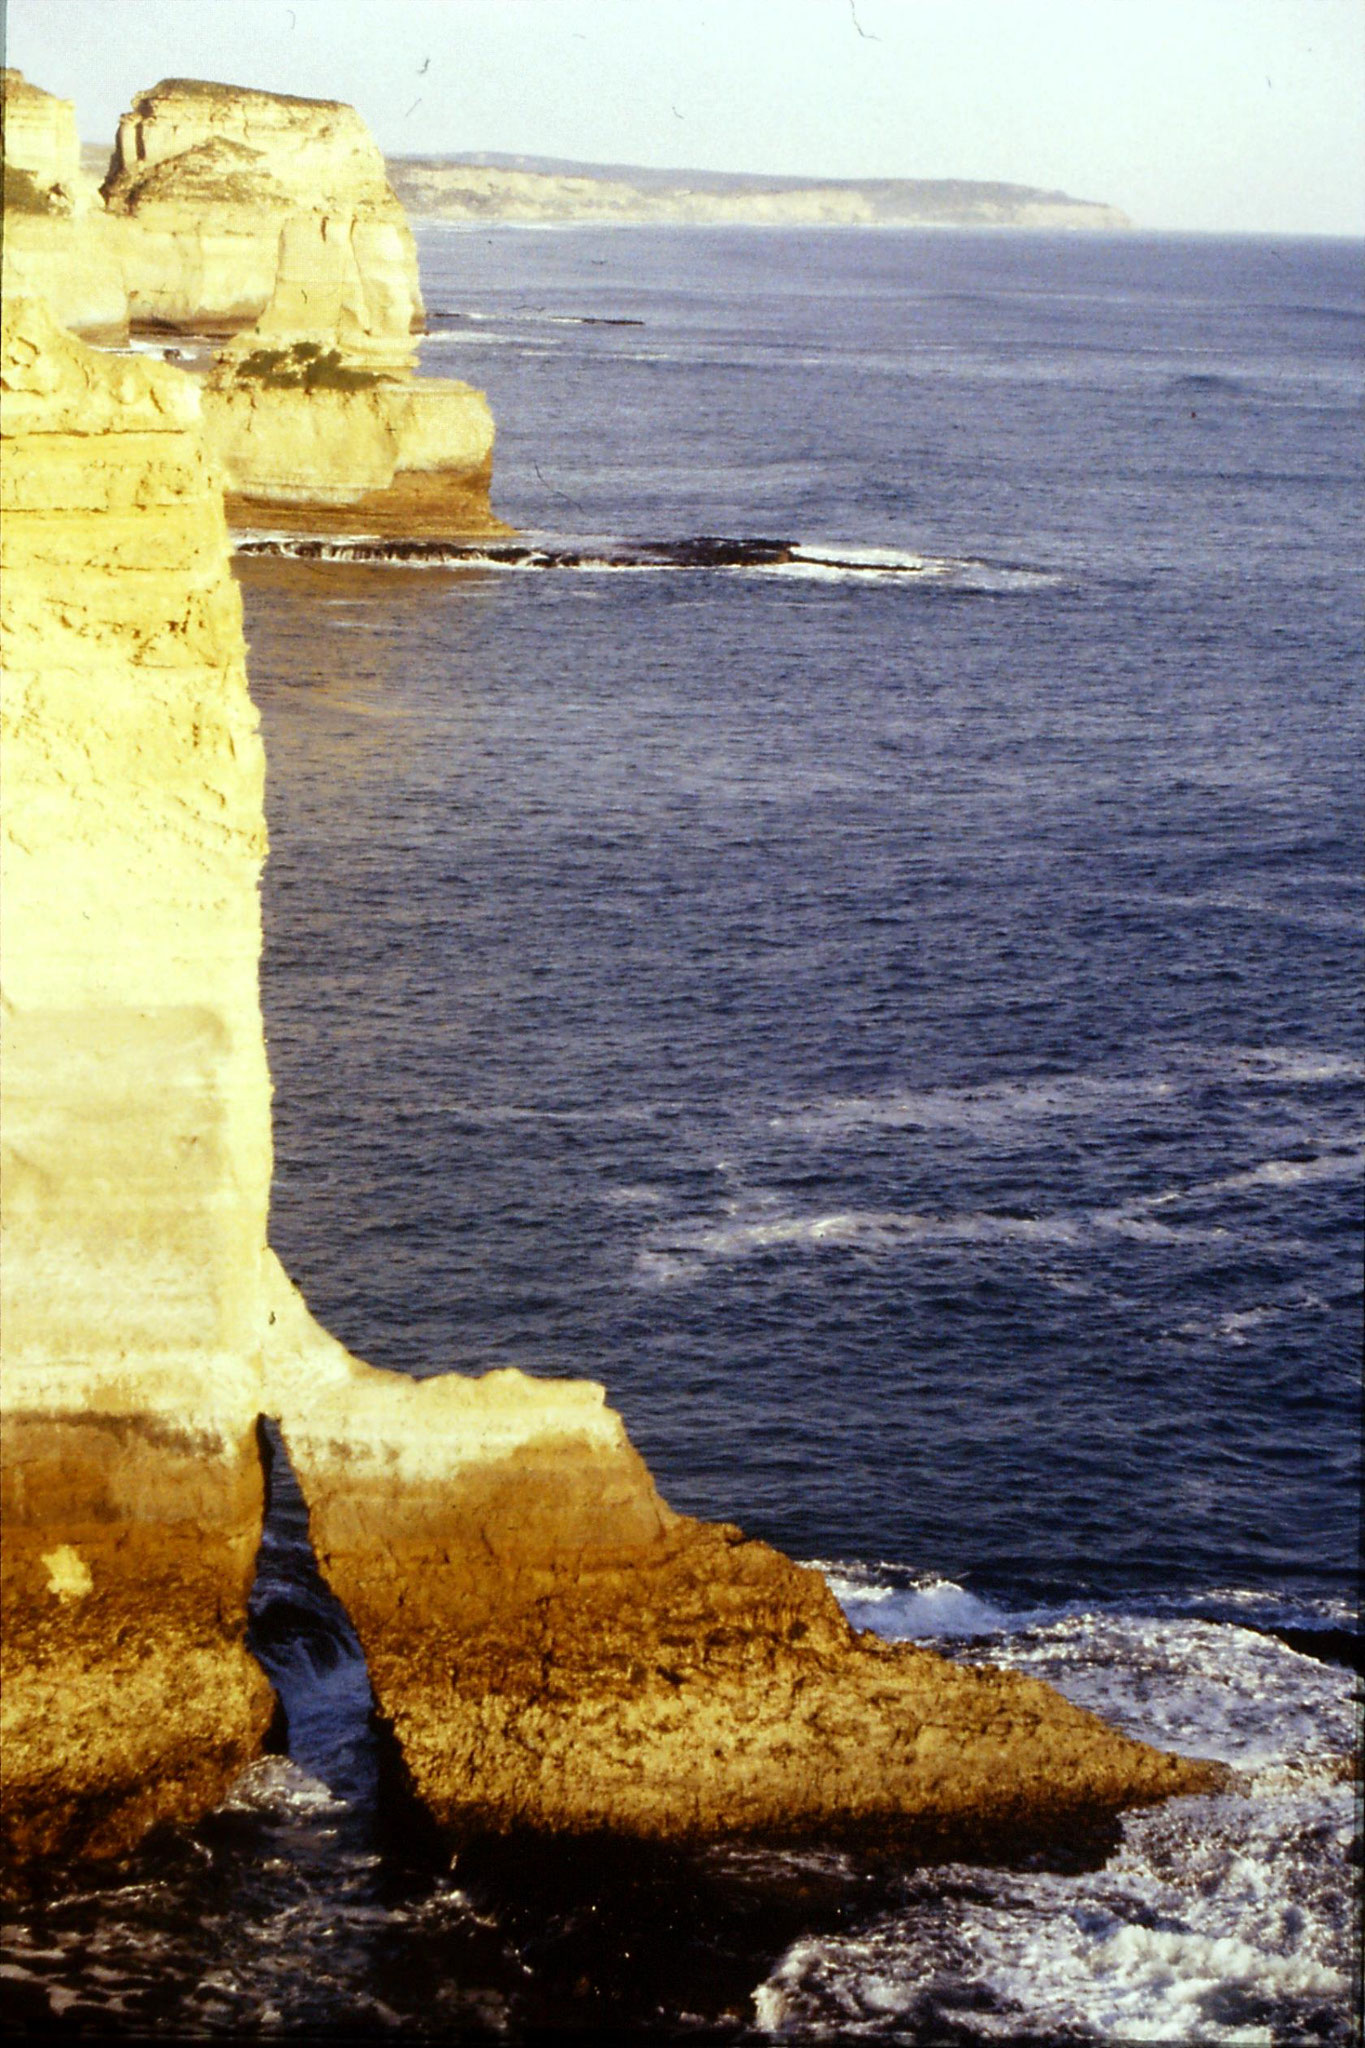 19/9/1990: 28: SE from Loch Ard Gorge